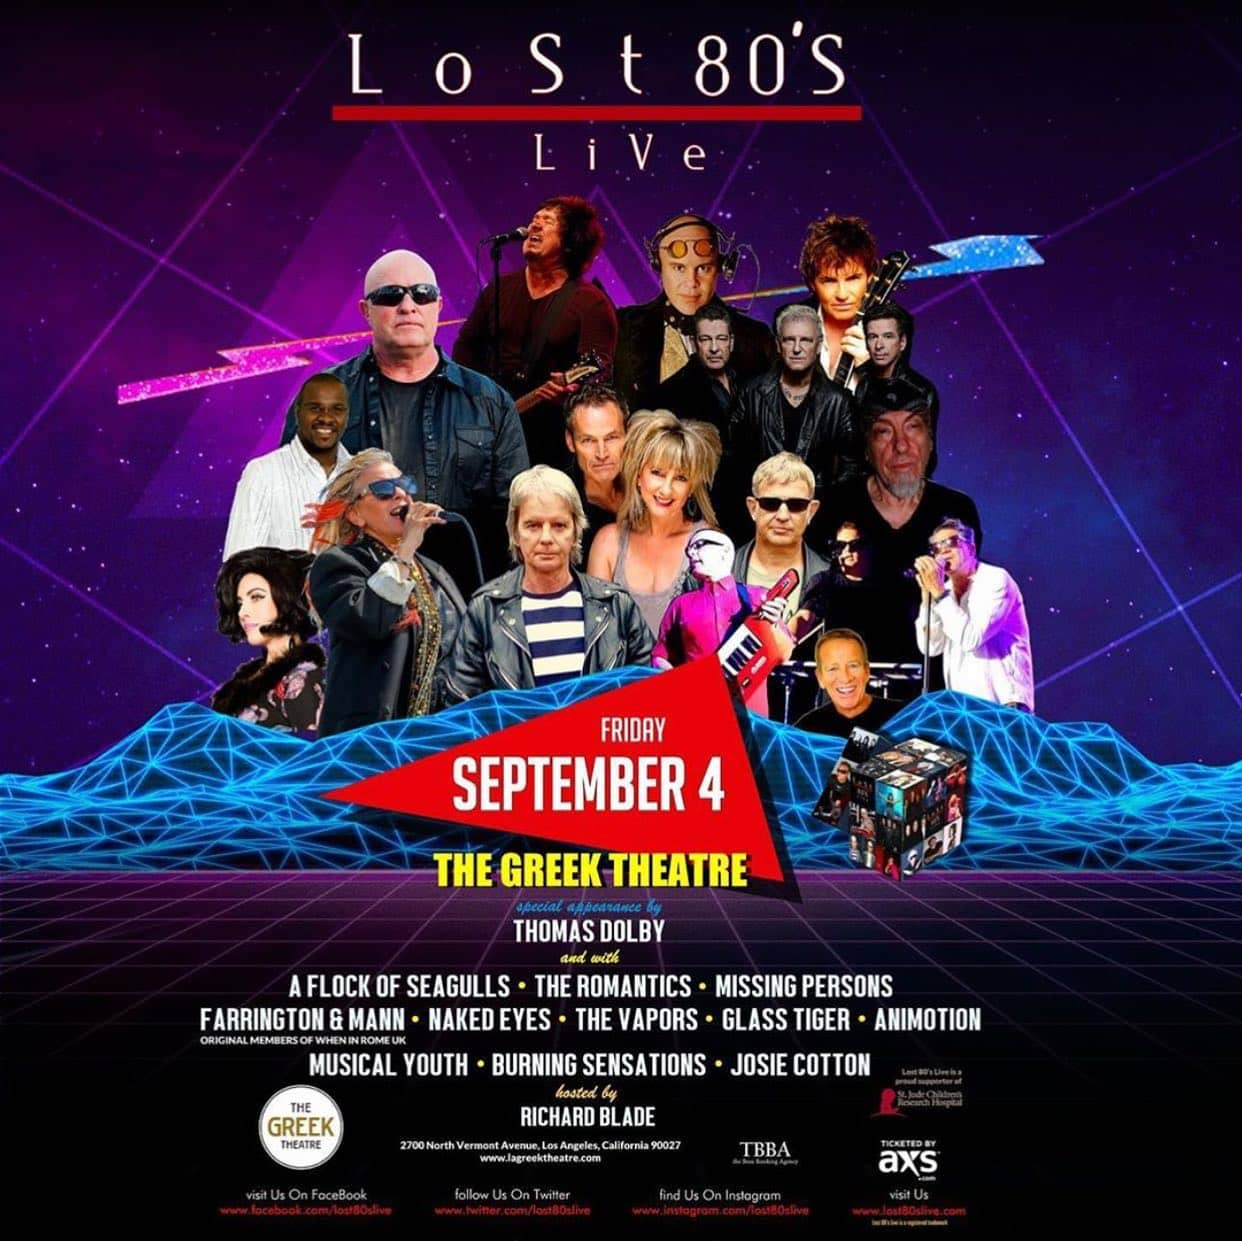 Lost 80s Live: Los Angeles